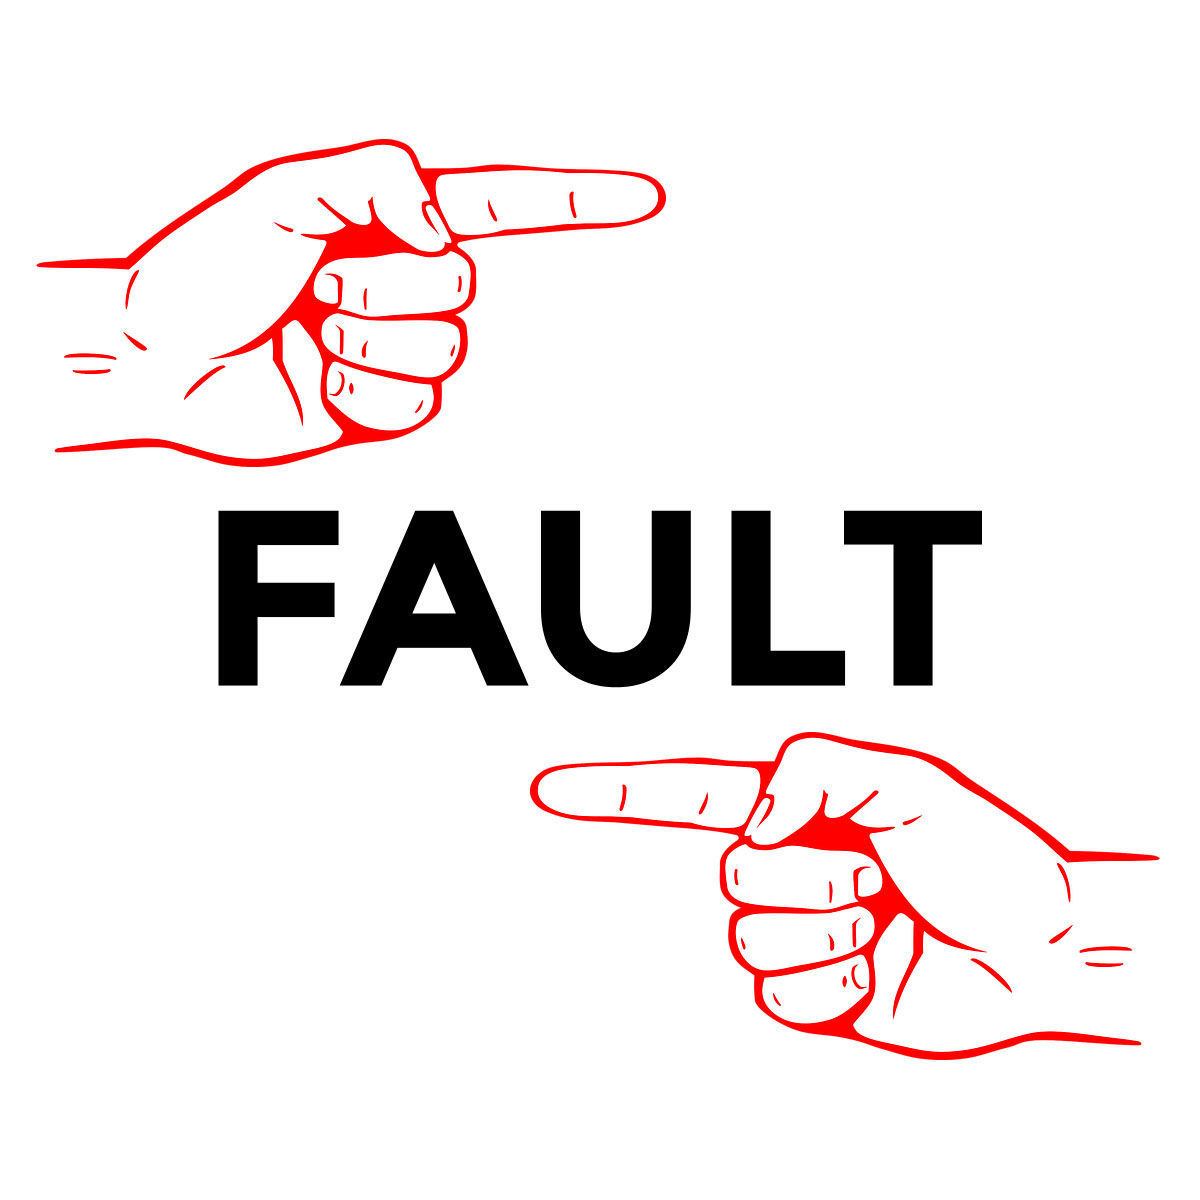 How Accident Fault is Determined by Police, Insurance, and the Courts